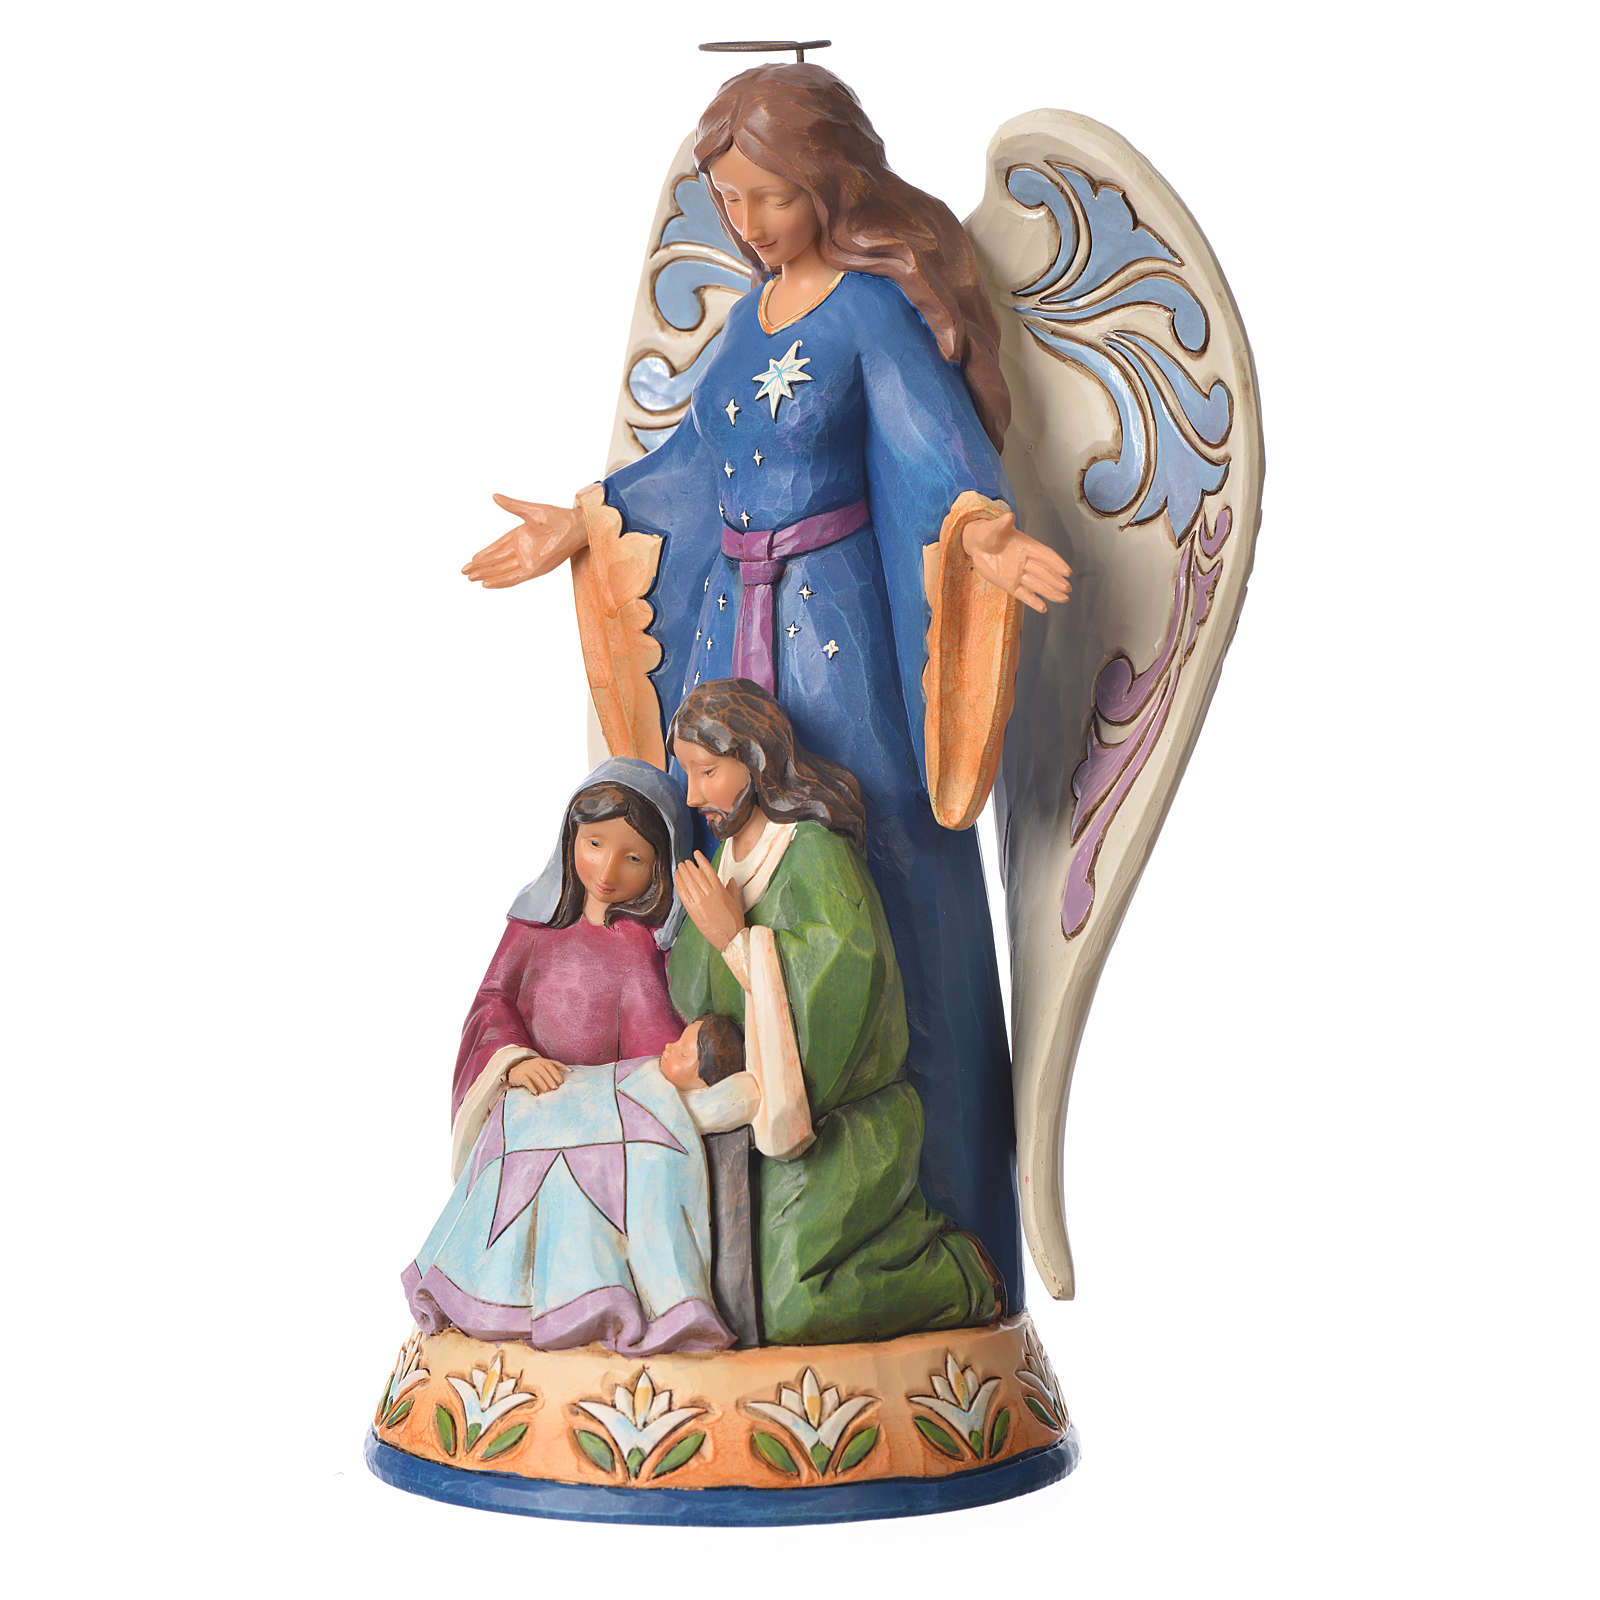 Jim Shore - Angel with Holy Family 23x16cm figurine 4